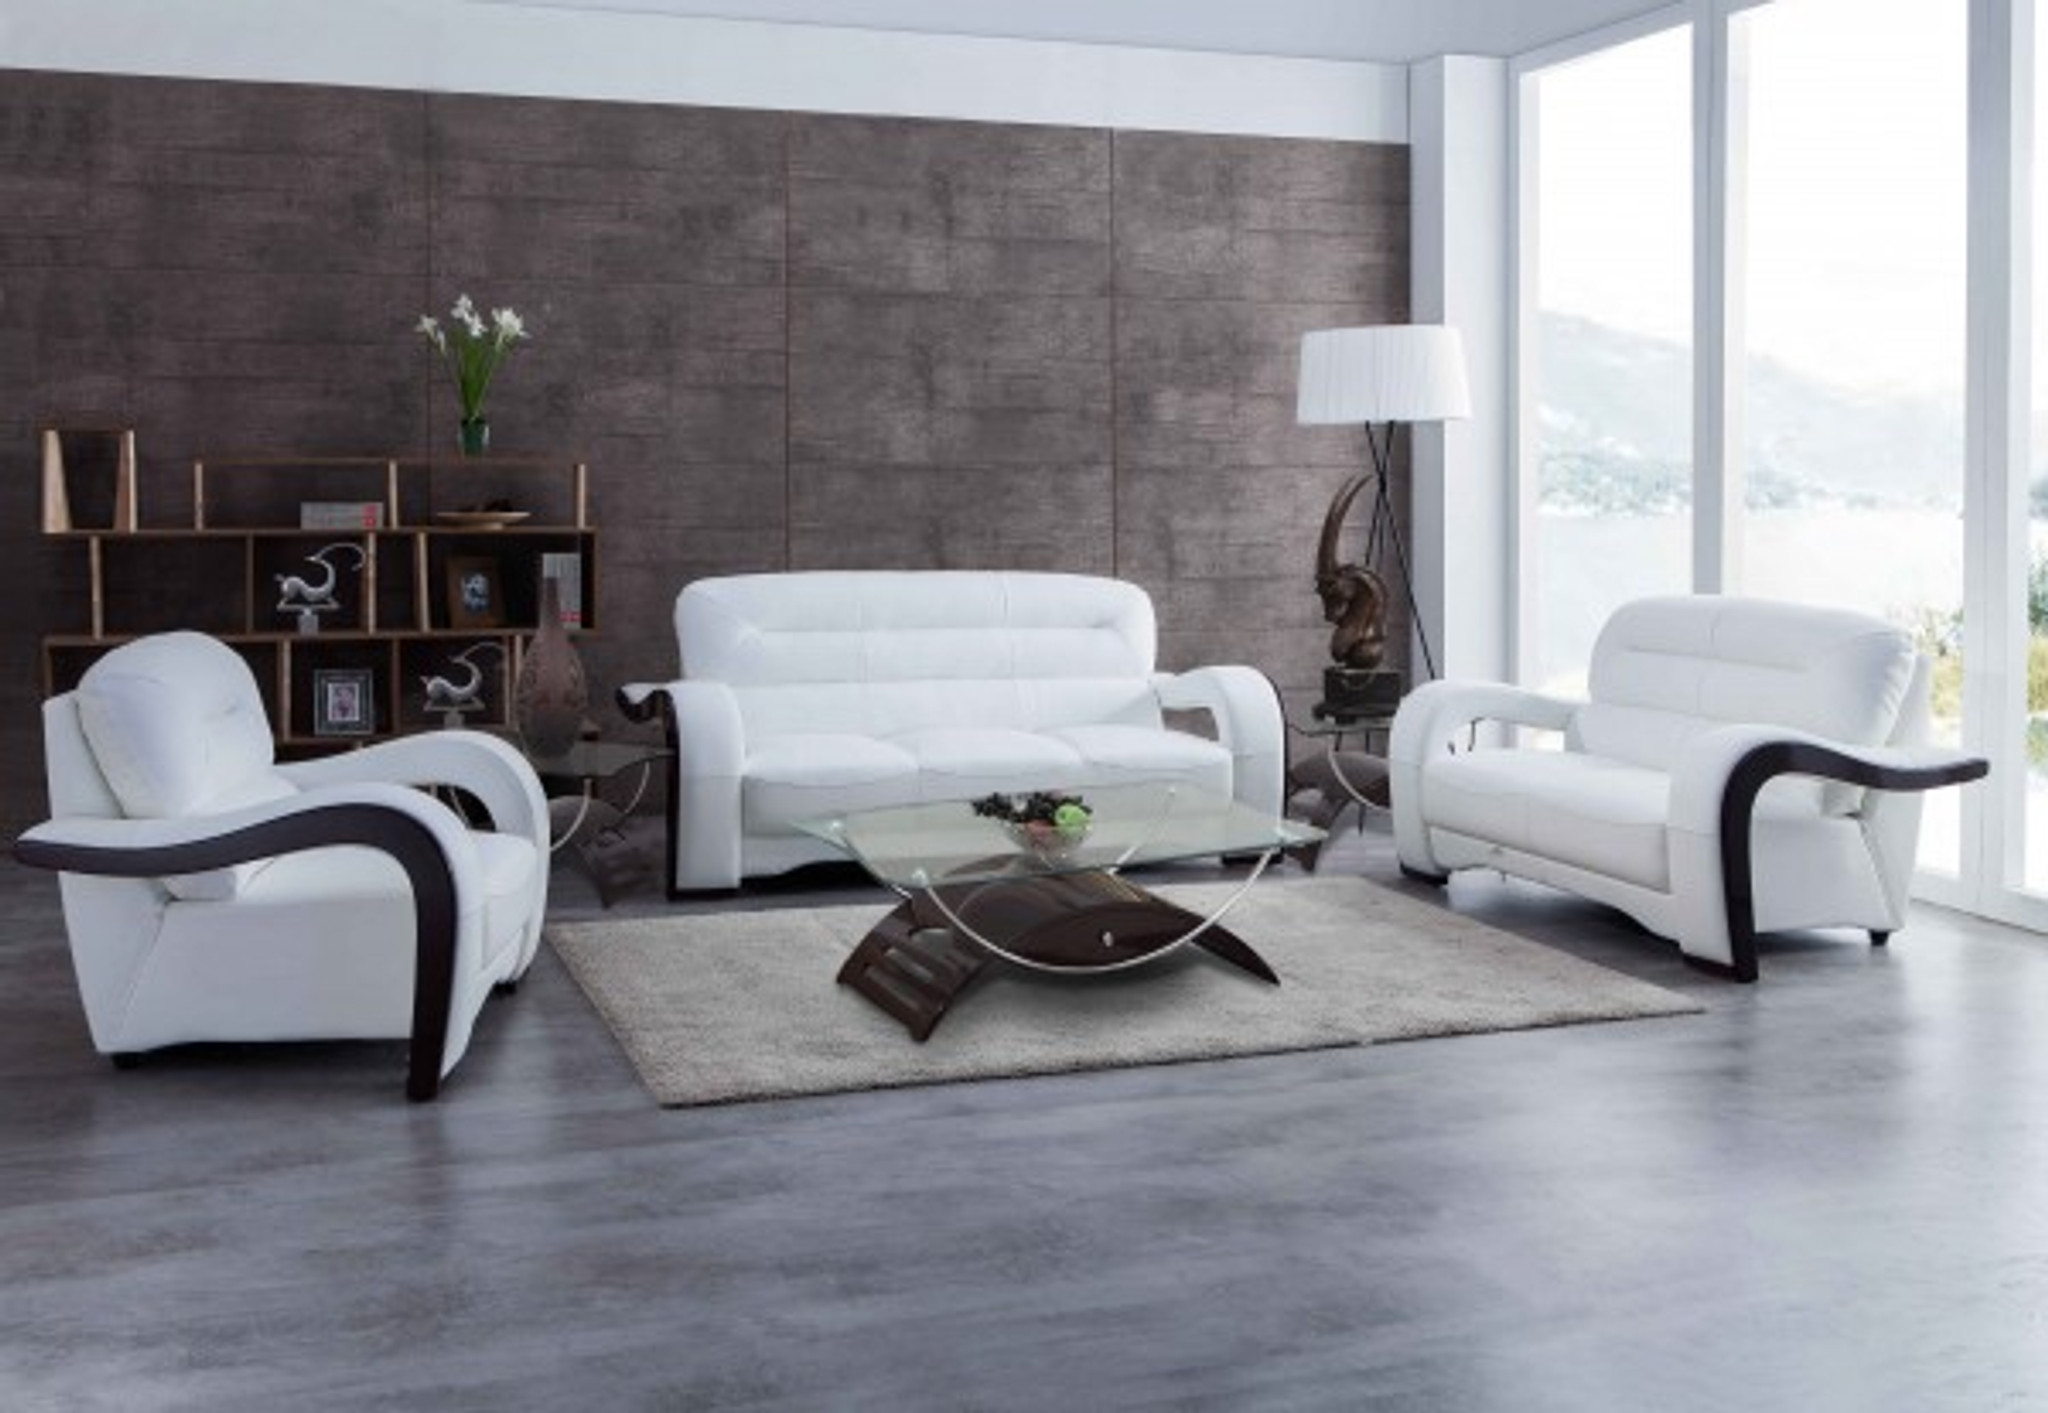 KASSA MALL HOME FURNITURE - U992 WHITE - SOFA LOVESEAT SET IN WHITE ...